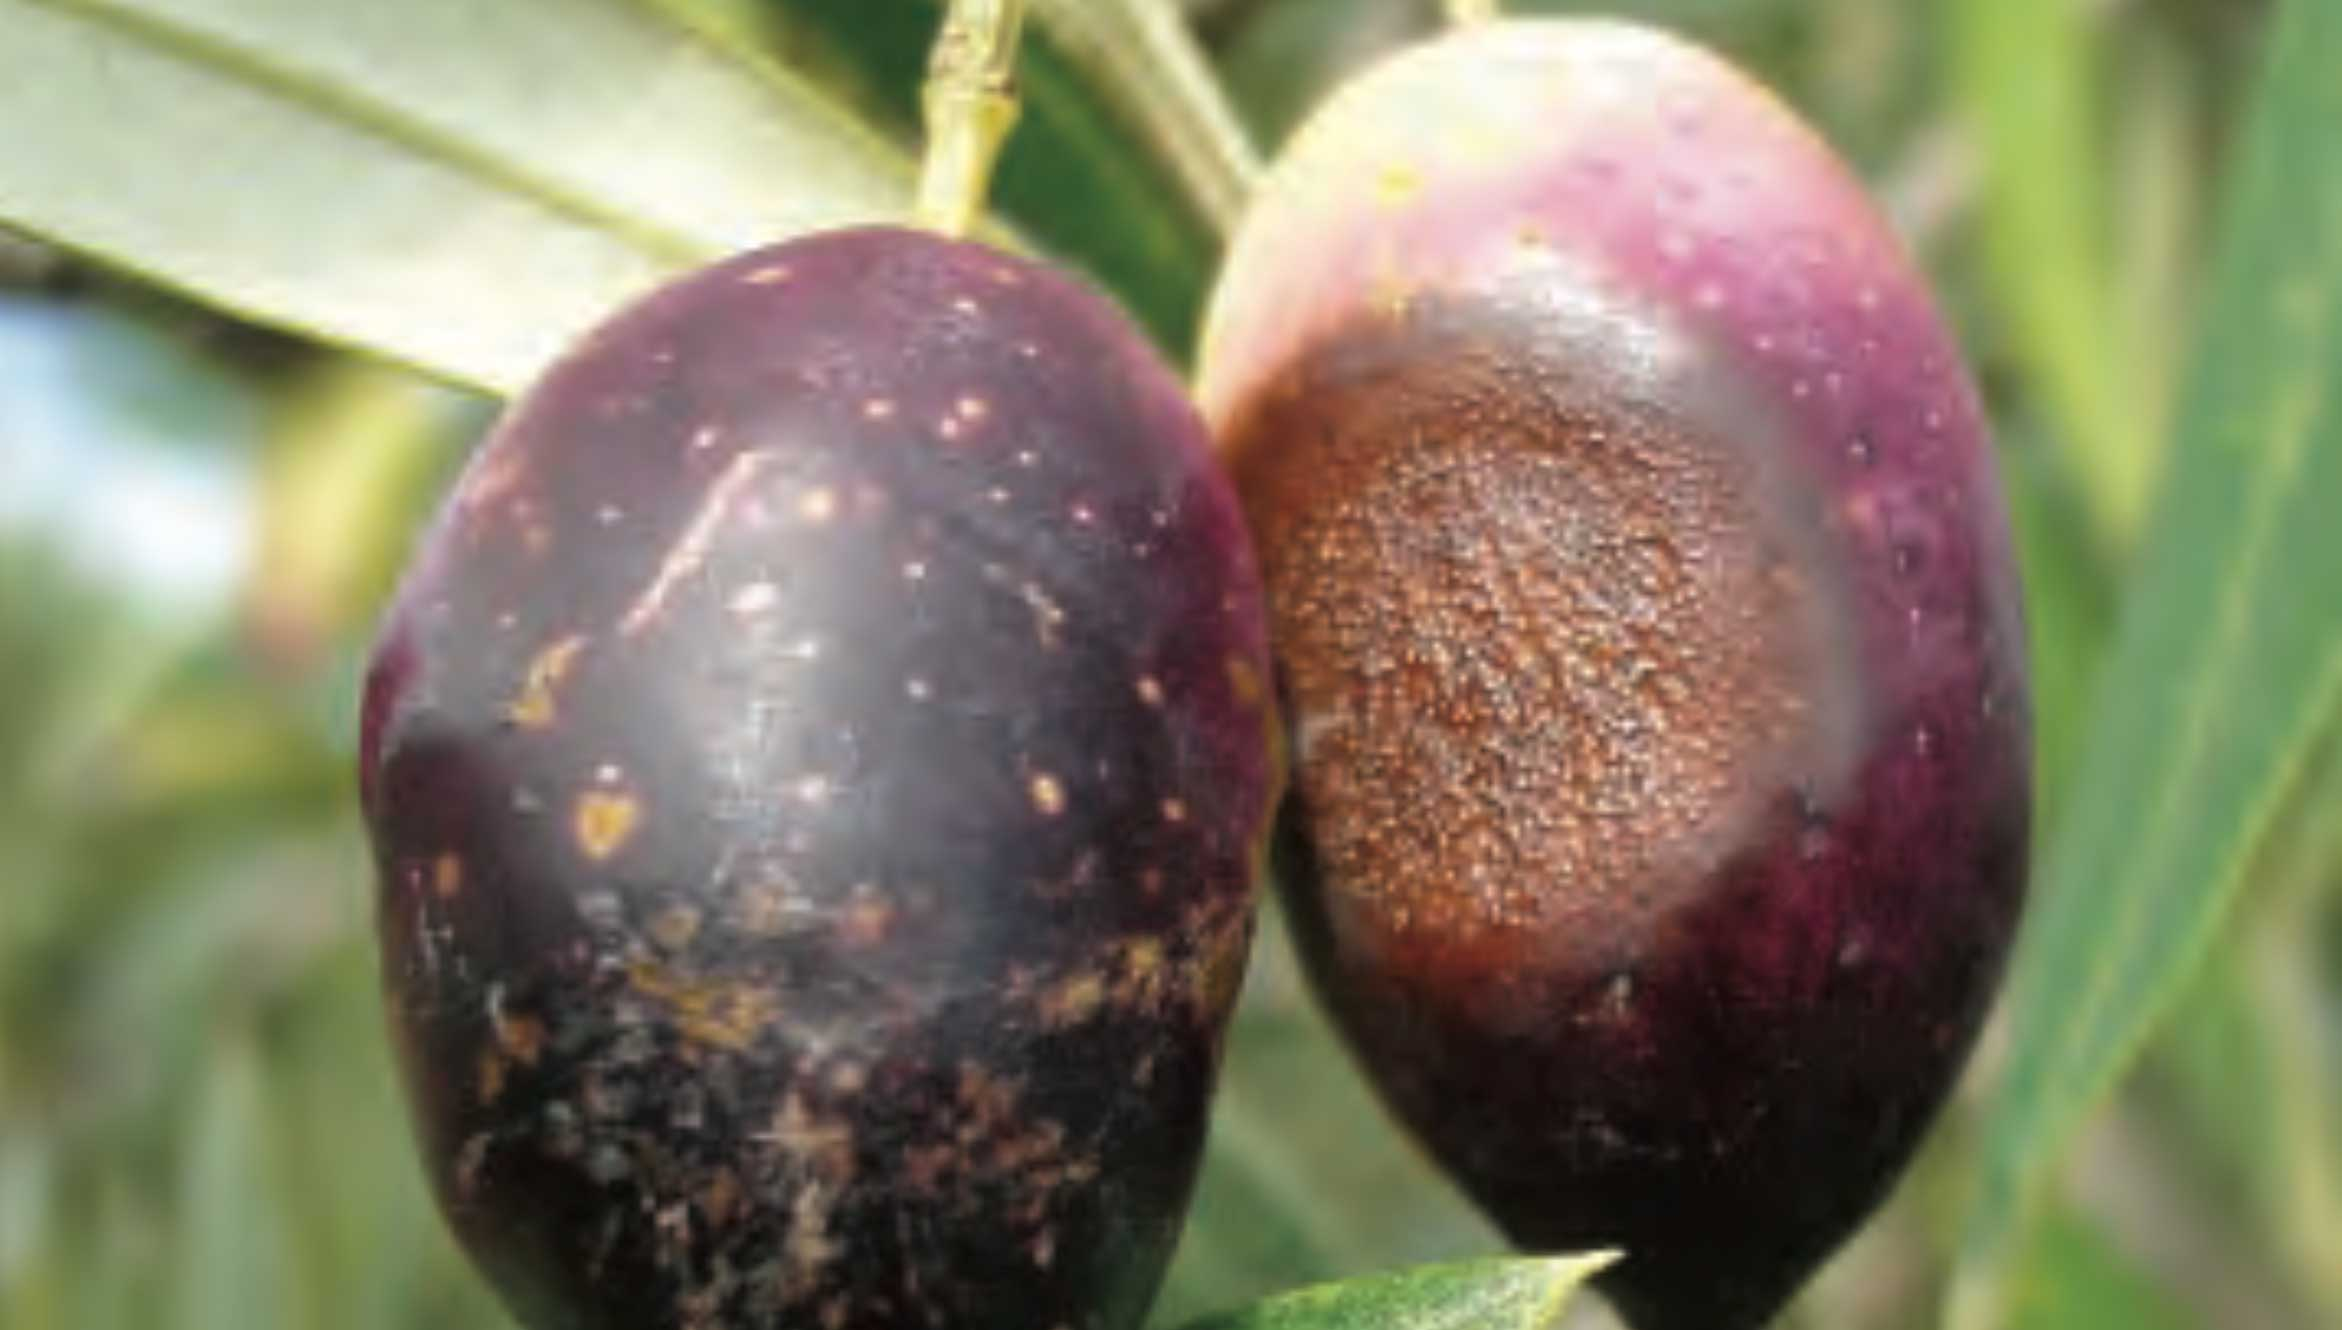 Anthracnose and Cercosporiose on olives in Australia: an update